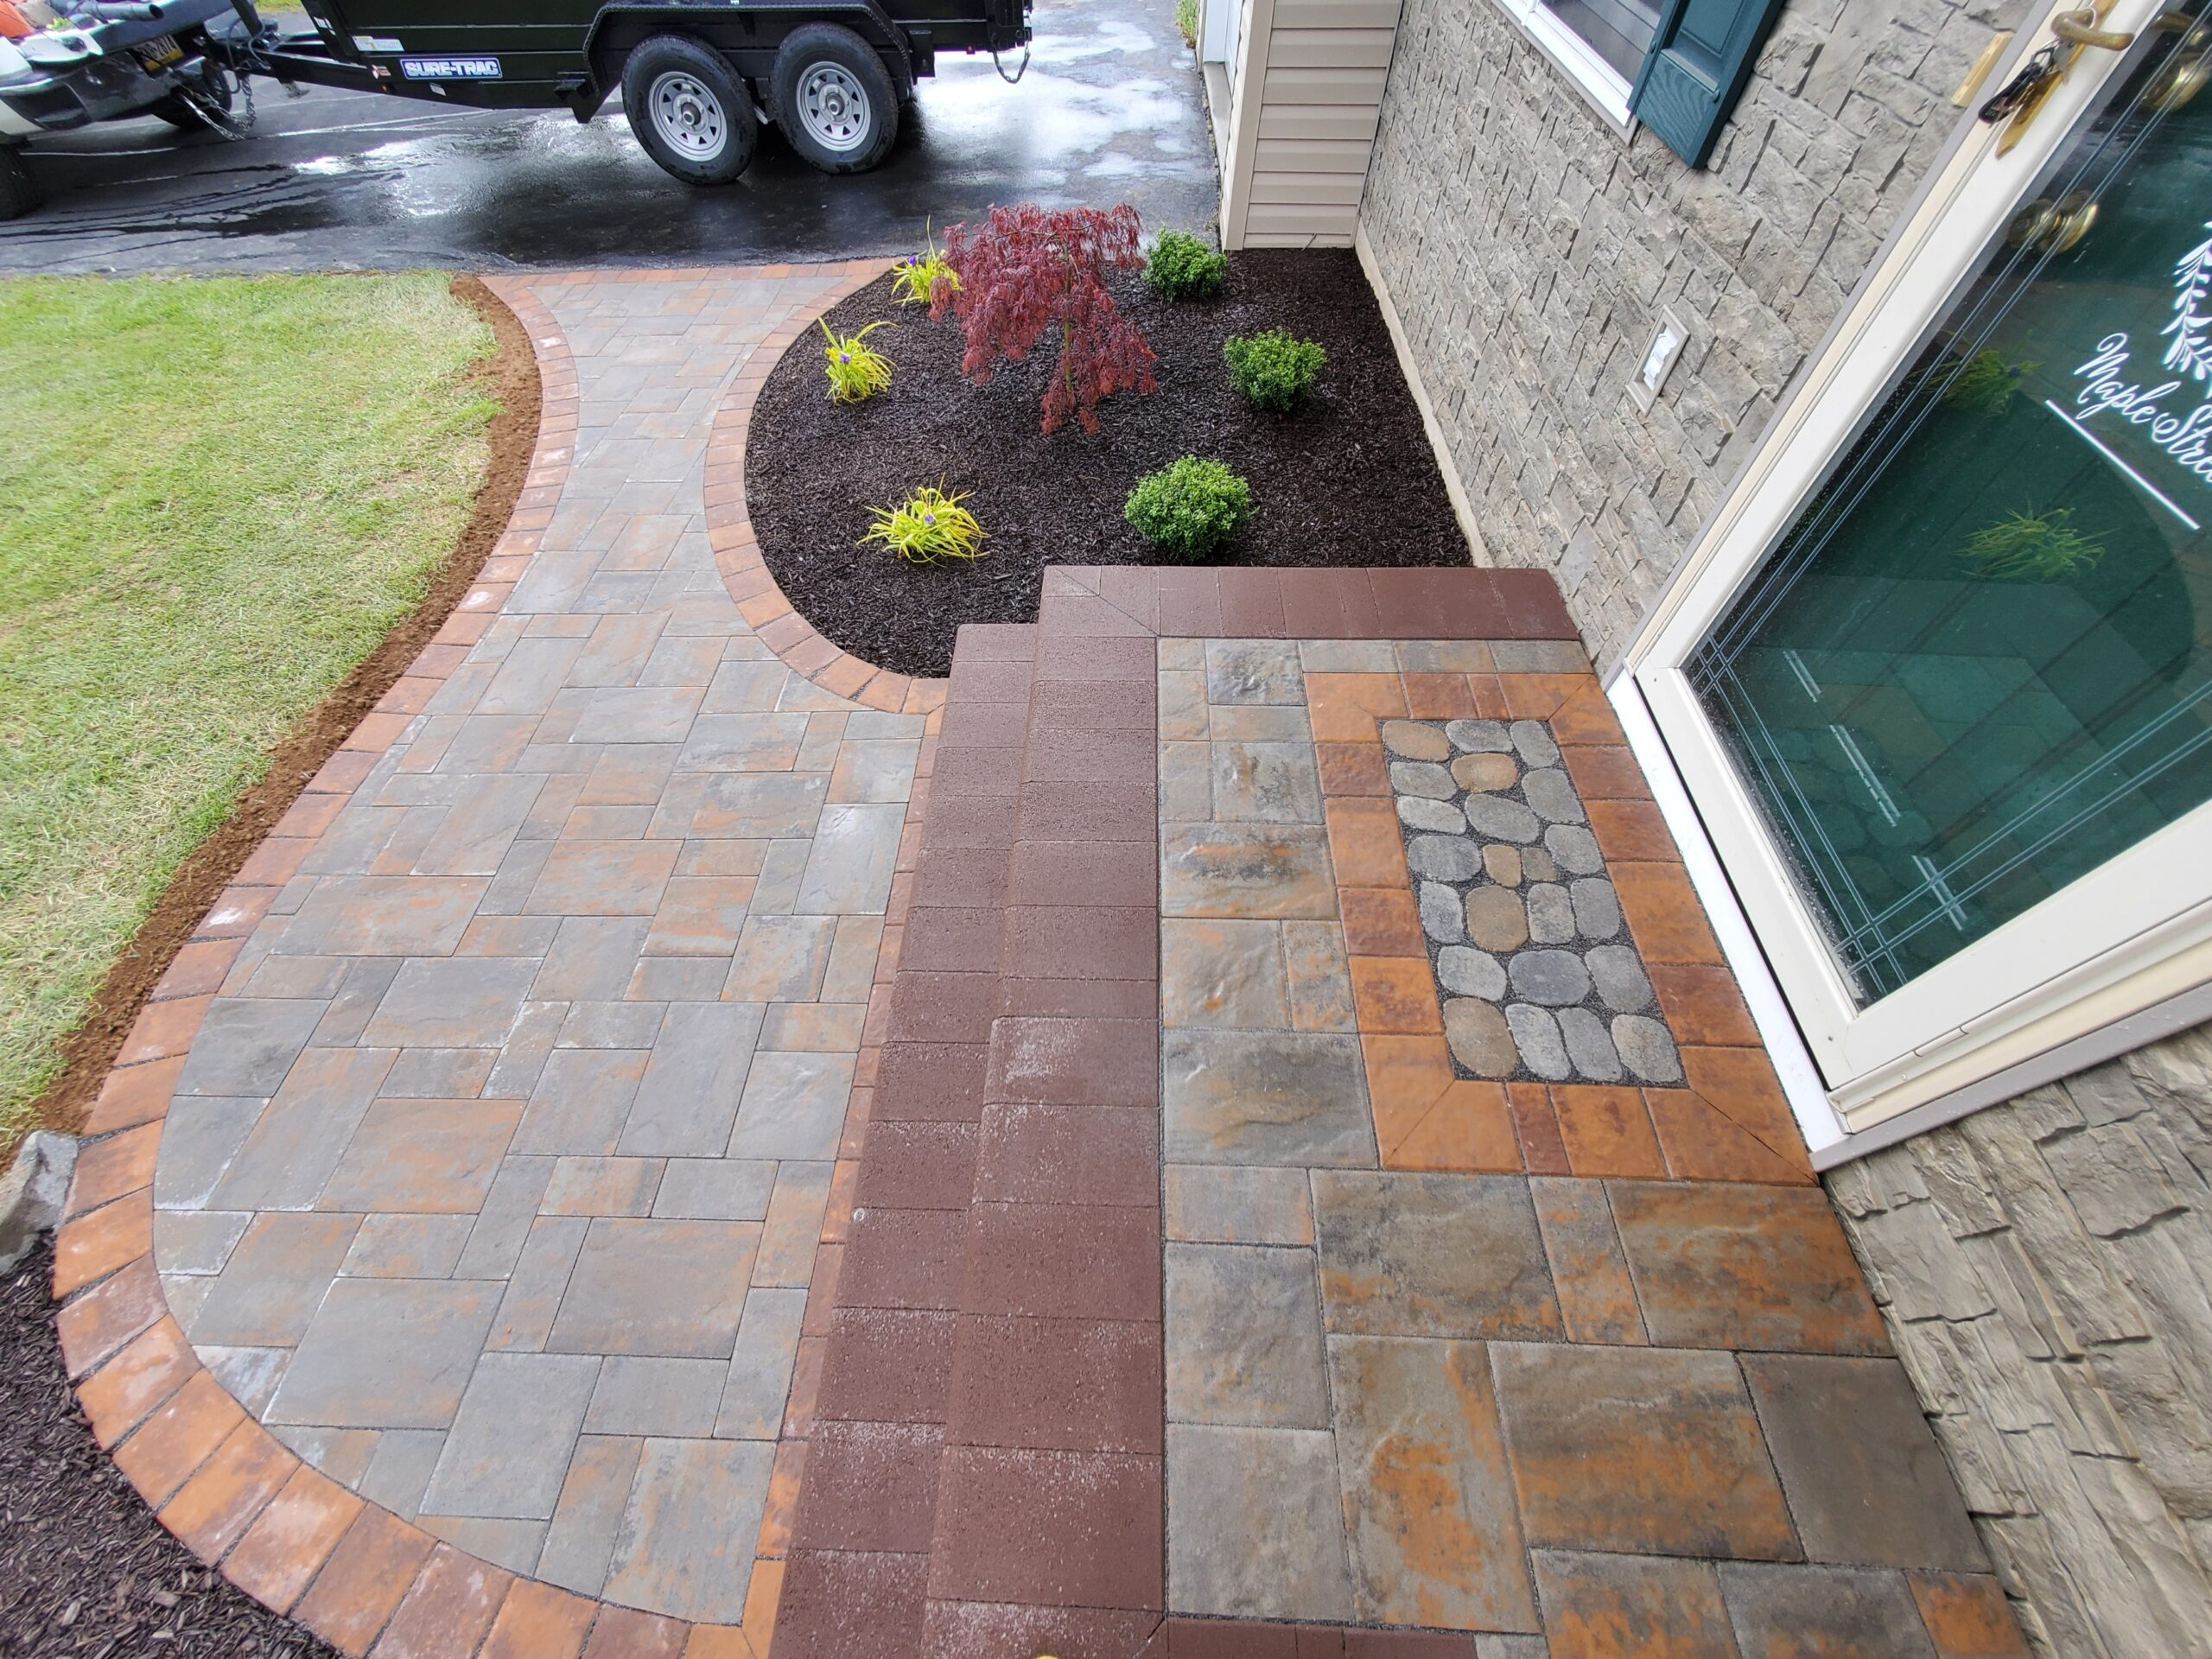 Professional Landscape & Hardscape Design & Installation Littlestown, PA DREAMscape Outdoors